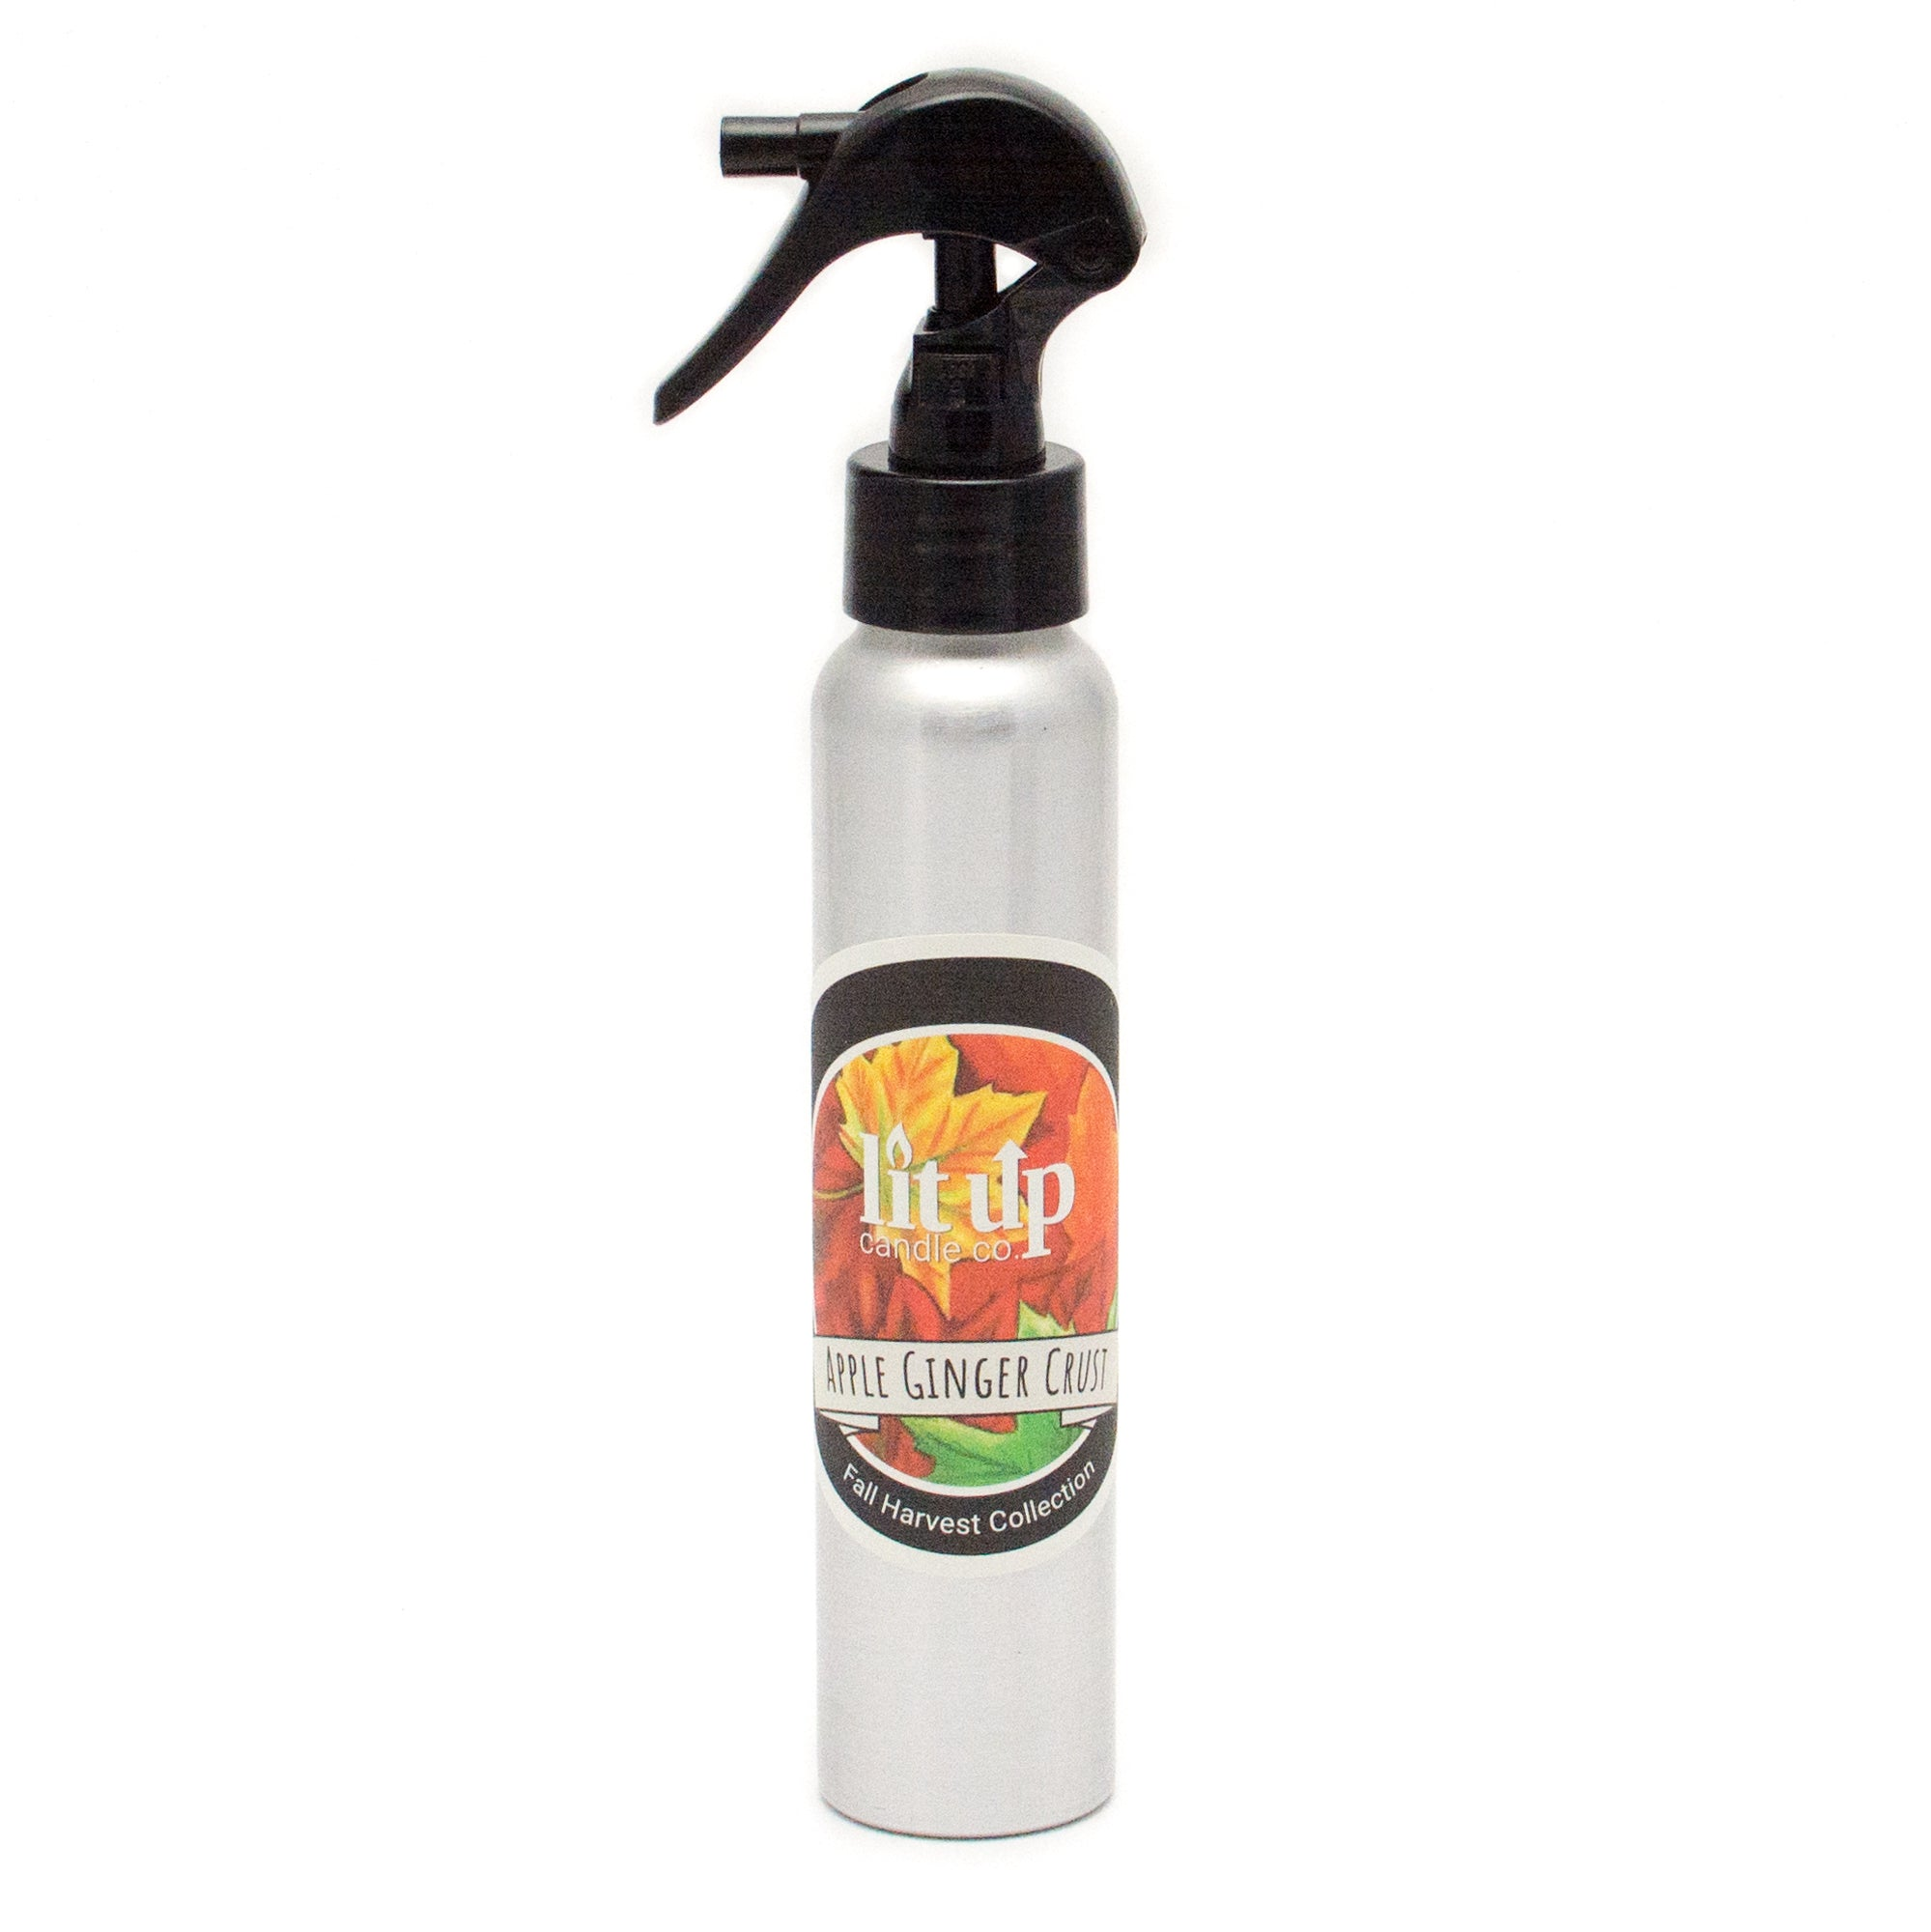 Apple Ginger Crust Room Spray